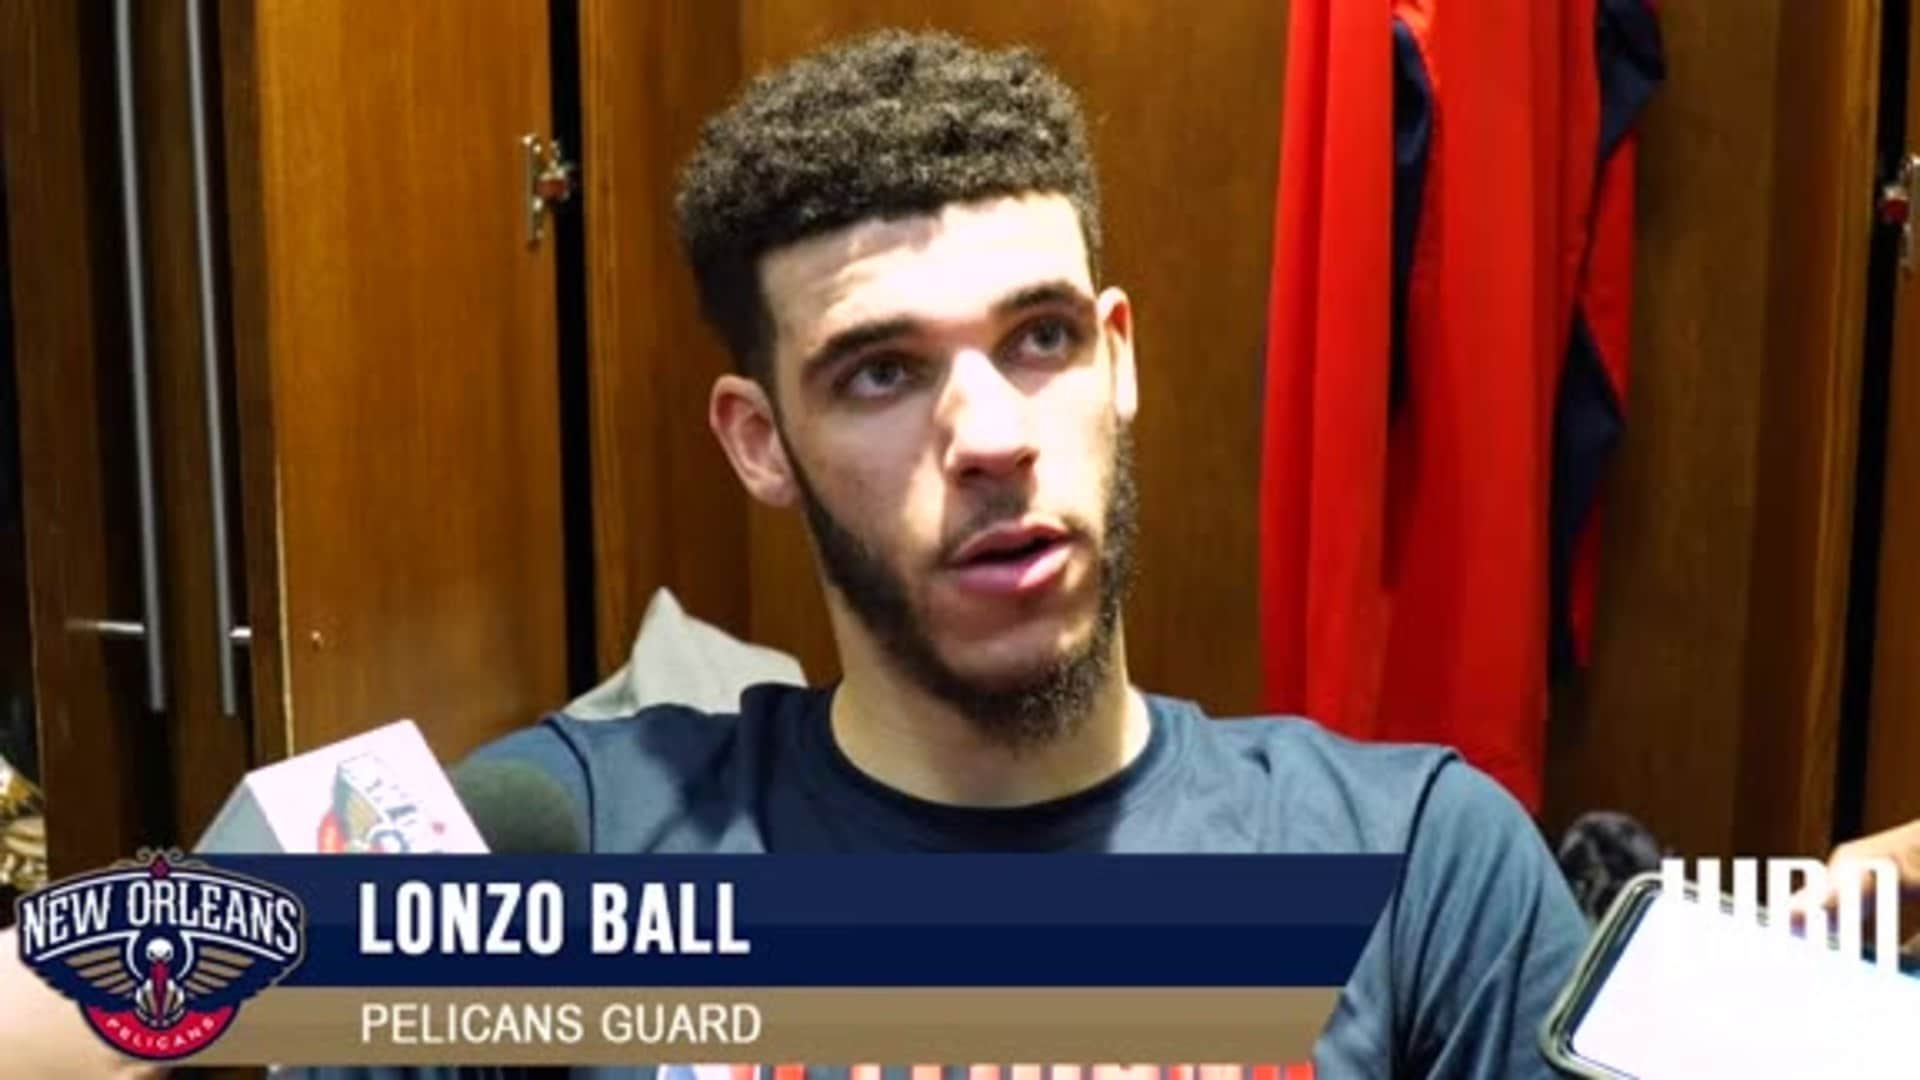 Pelicans-Clippers Postgame: Lonzo Ball 1-18-2020